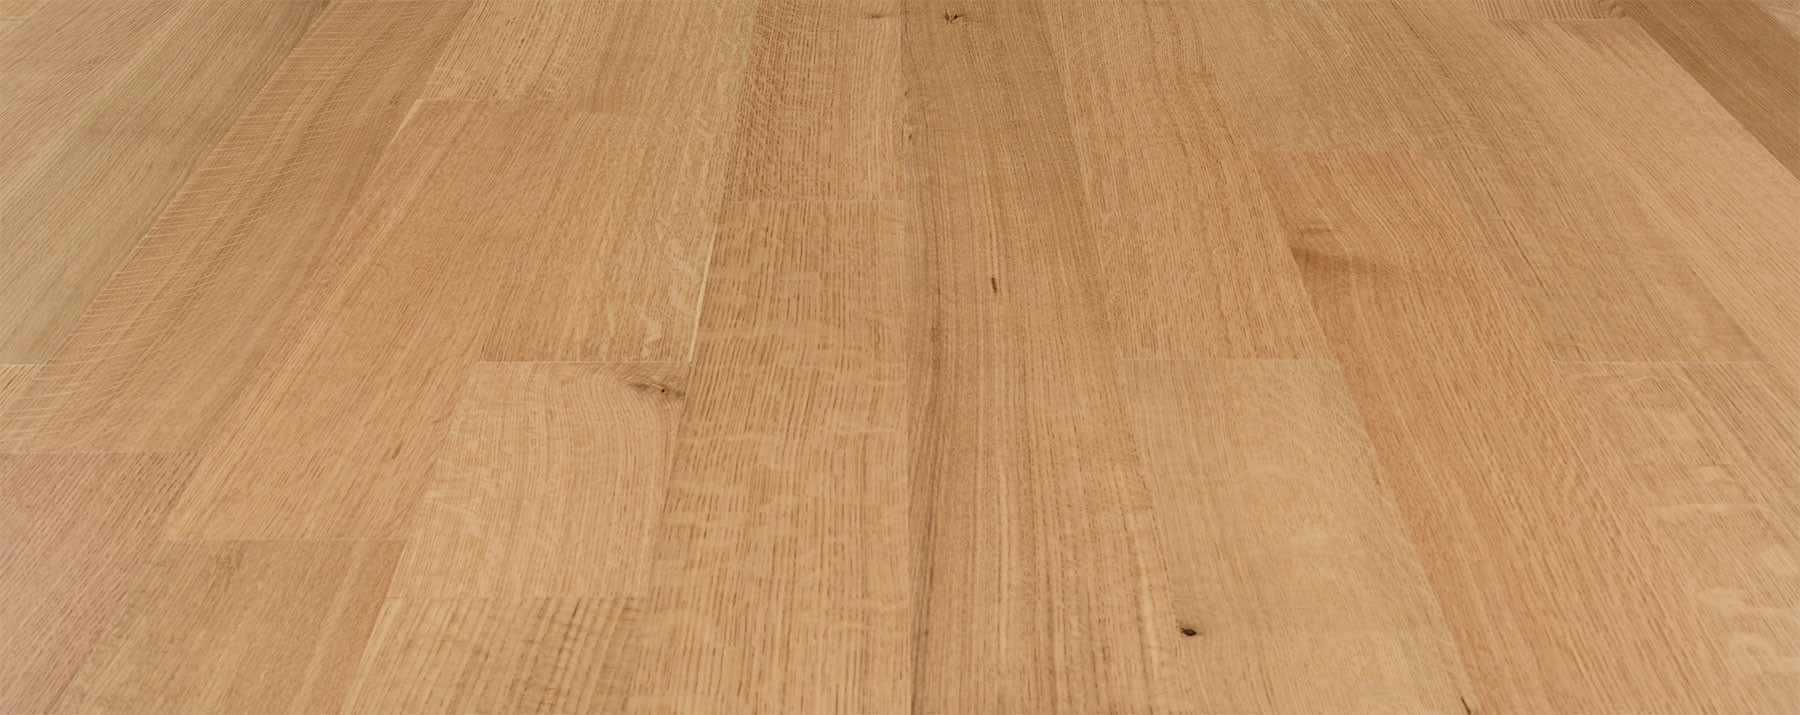 what is janka rating for hardwood flooring of american quartered white oak 5″ etx surfaces throughout etx surfaces american quartered white oak wood flooring